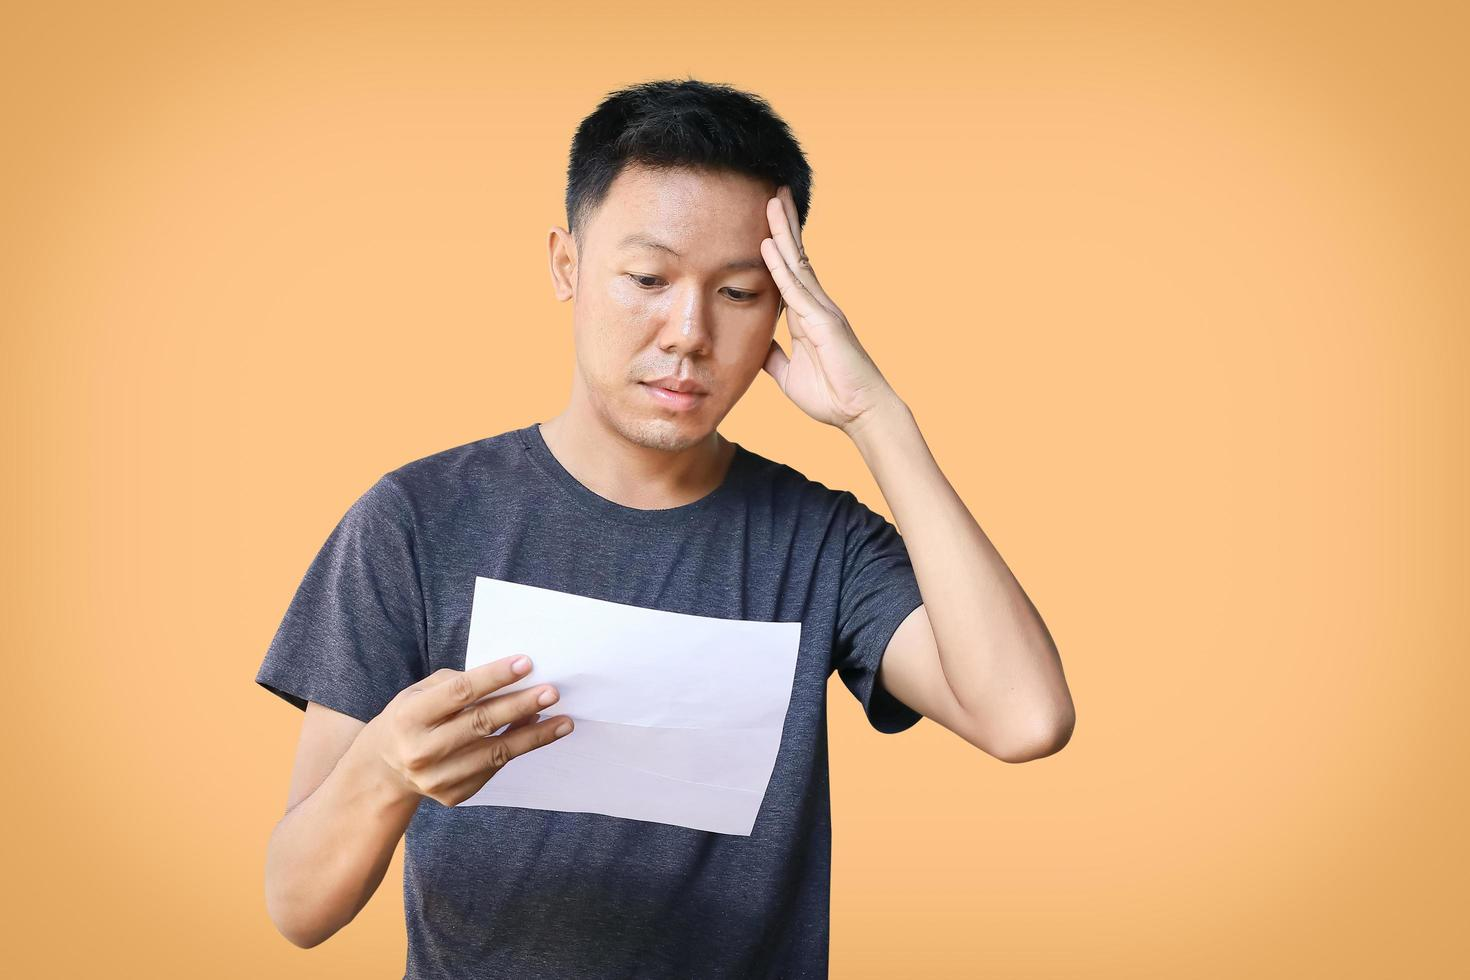 A man who is frustrated when reading his financial reports photo